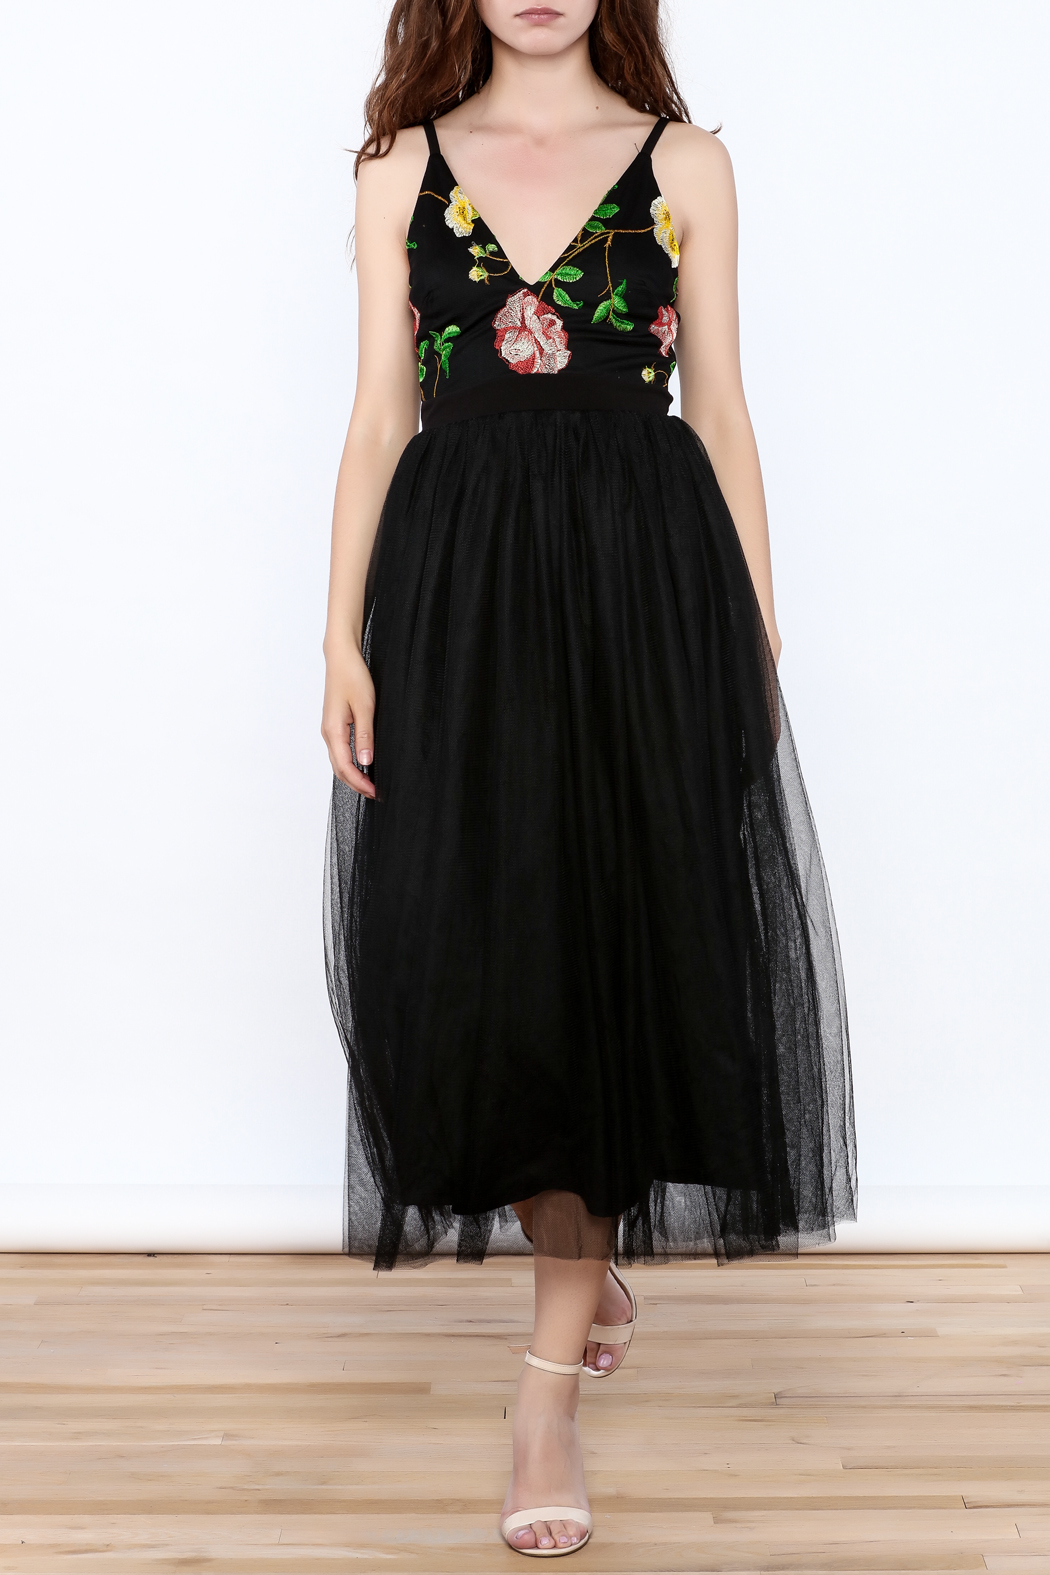 privy Black Embroidered Sleeveless Dress - Front Full Image